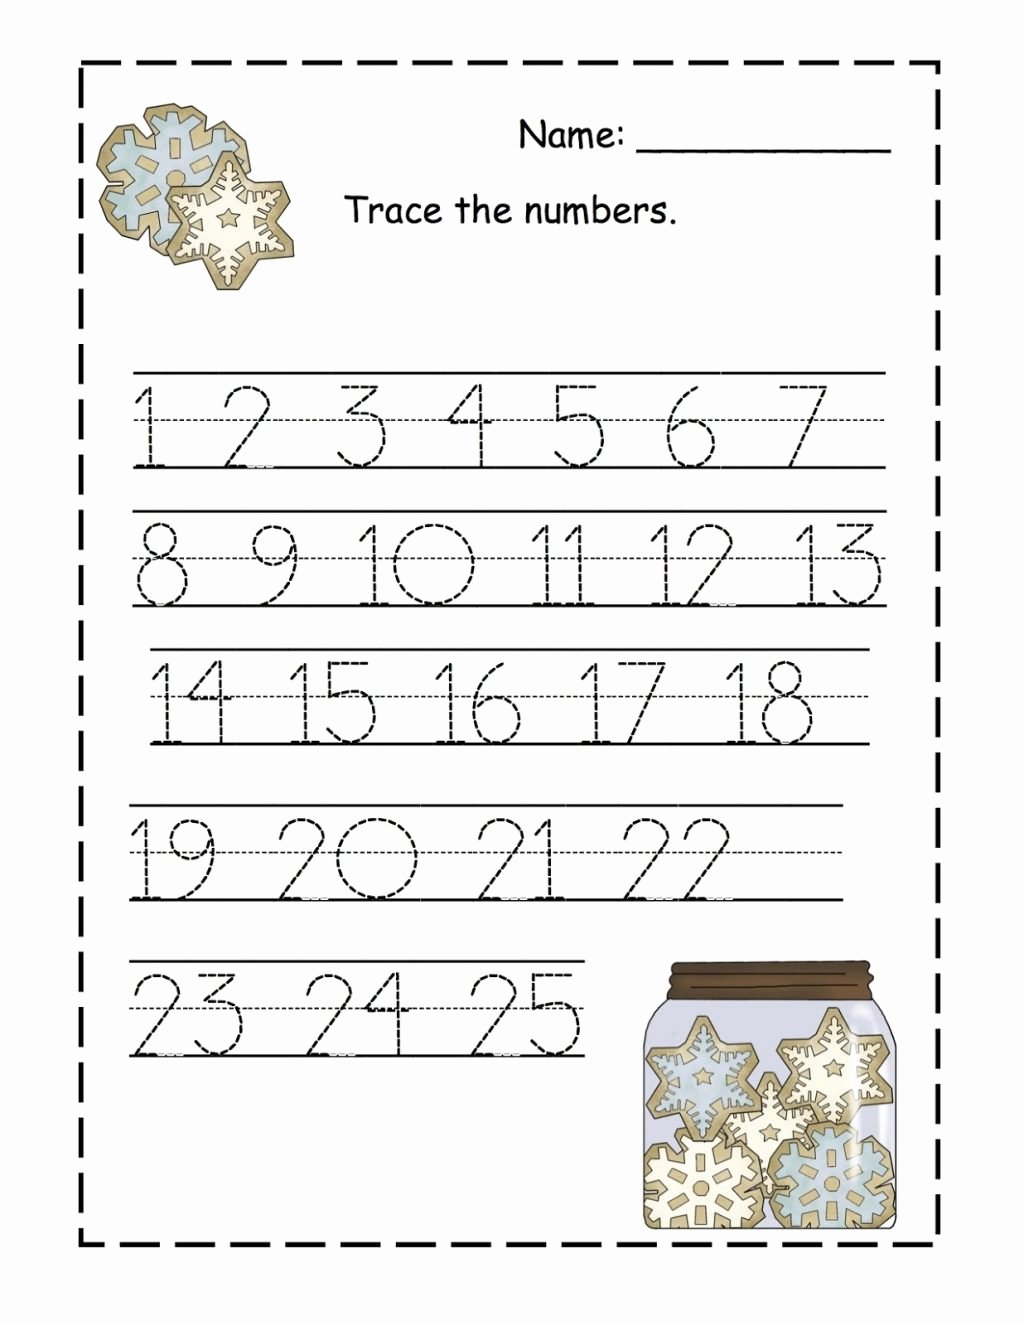 Tracing Numbers Worksheets for Preschoolers Best Of Worksheet Worksheet Free Tracing Worksheets astonishing